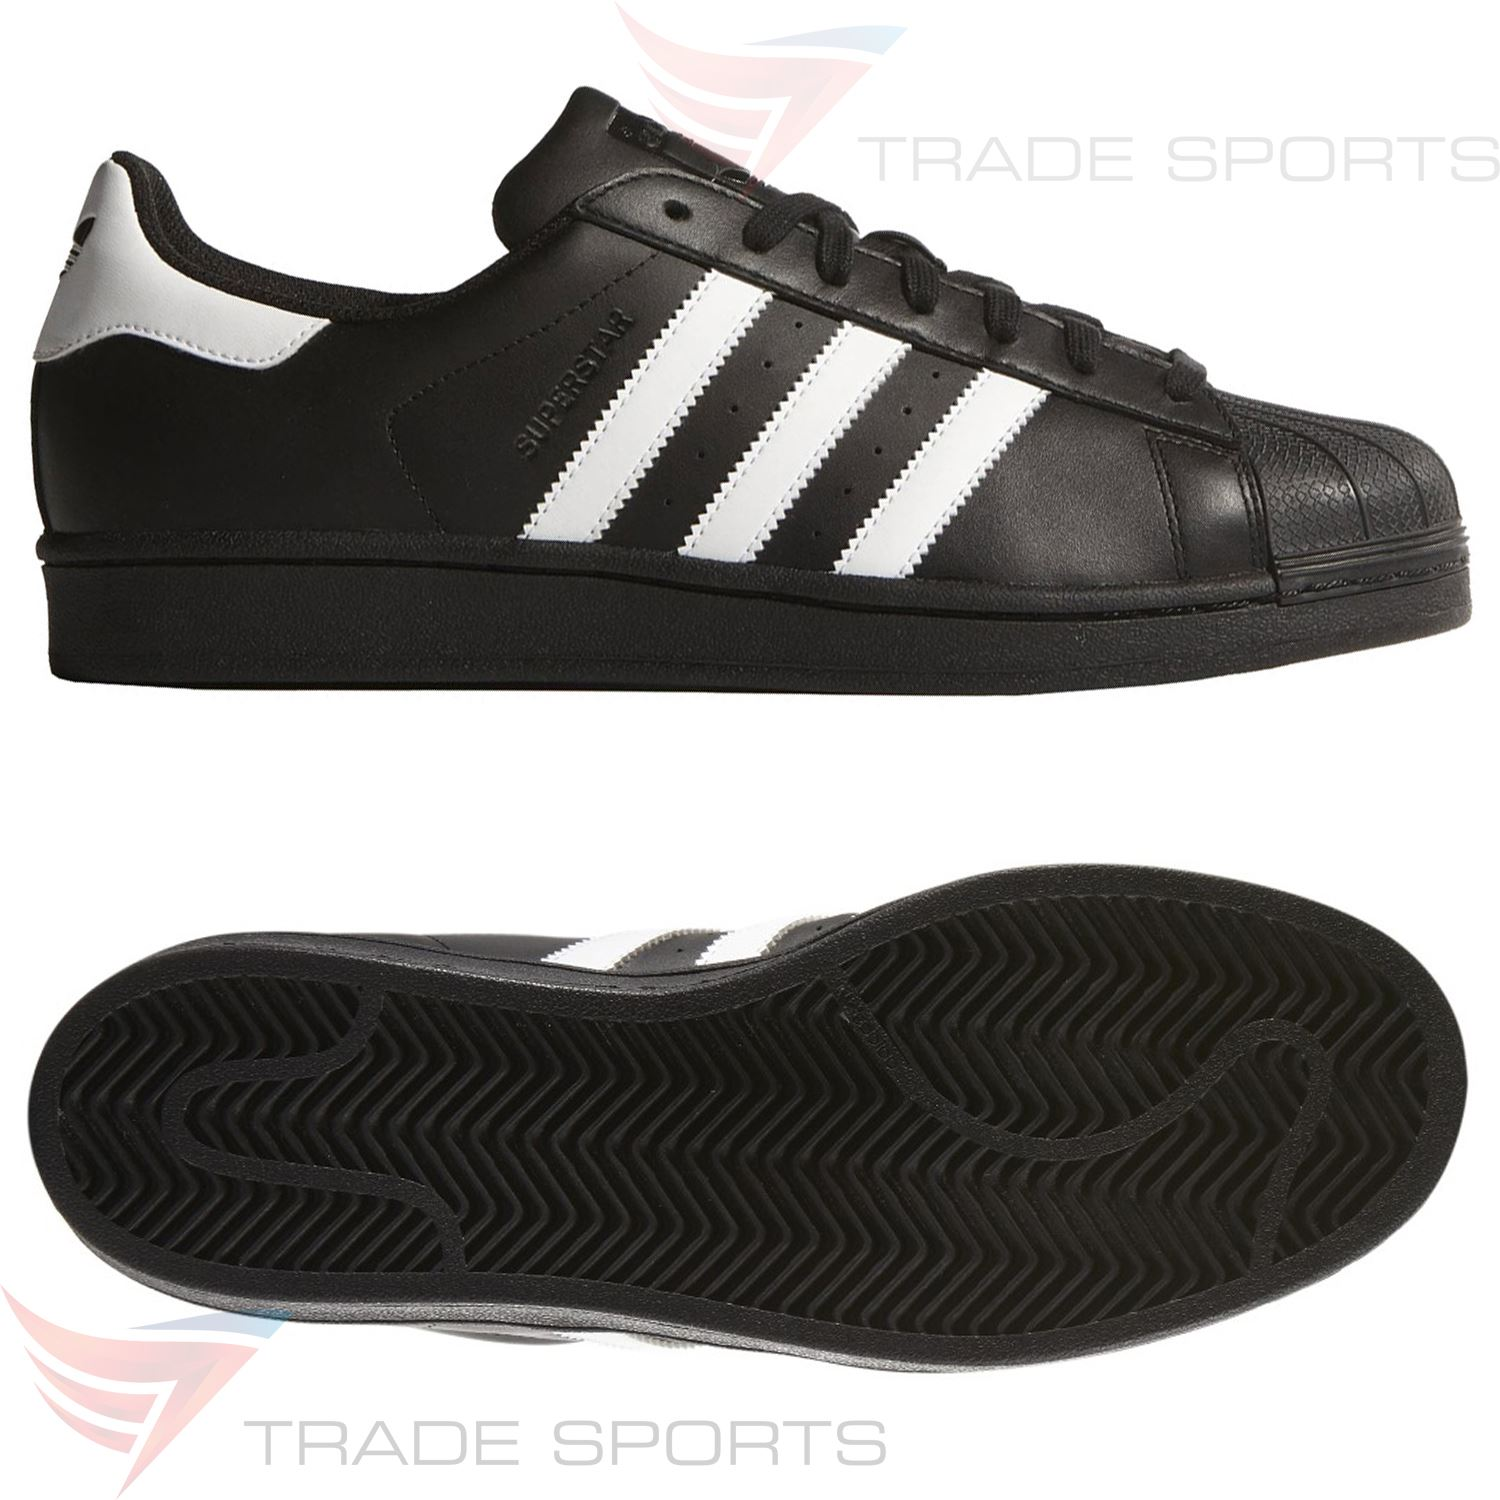 Détails sur Adidas Originaux Superstar Foundation Baskets Noir Blanc Run DMC Hip Hop Shoes